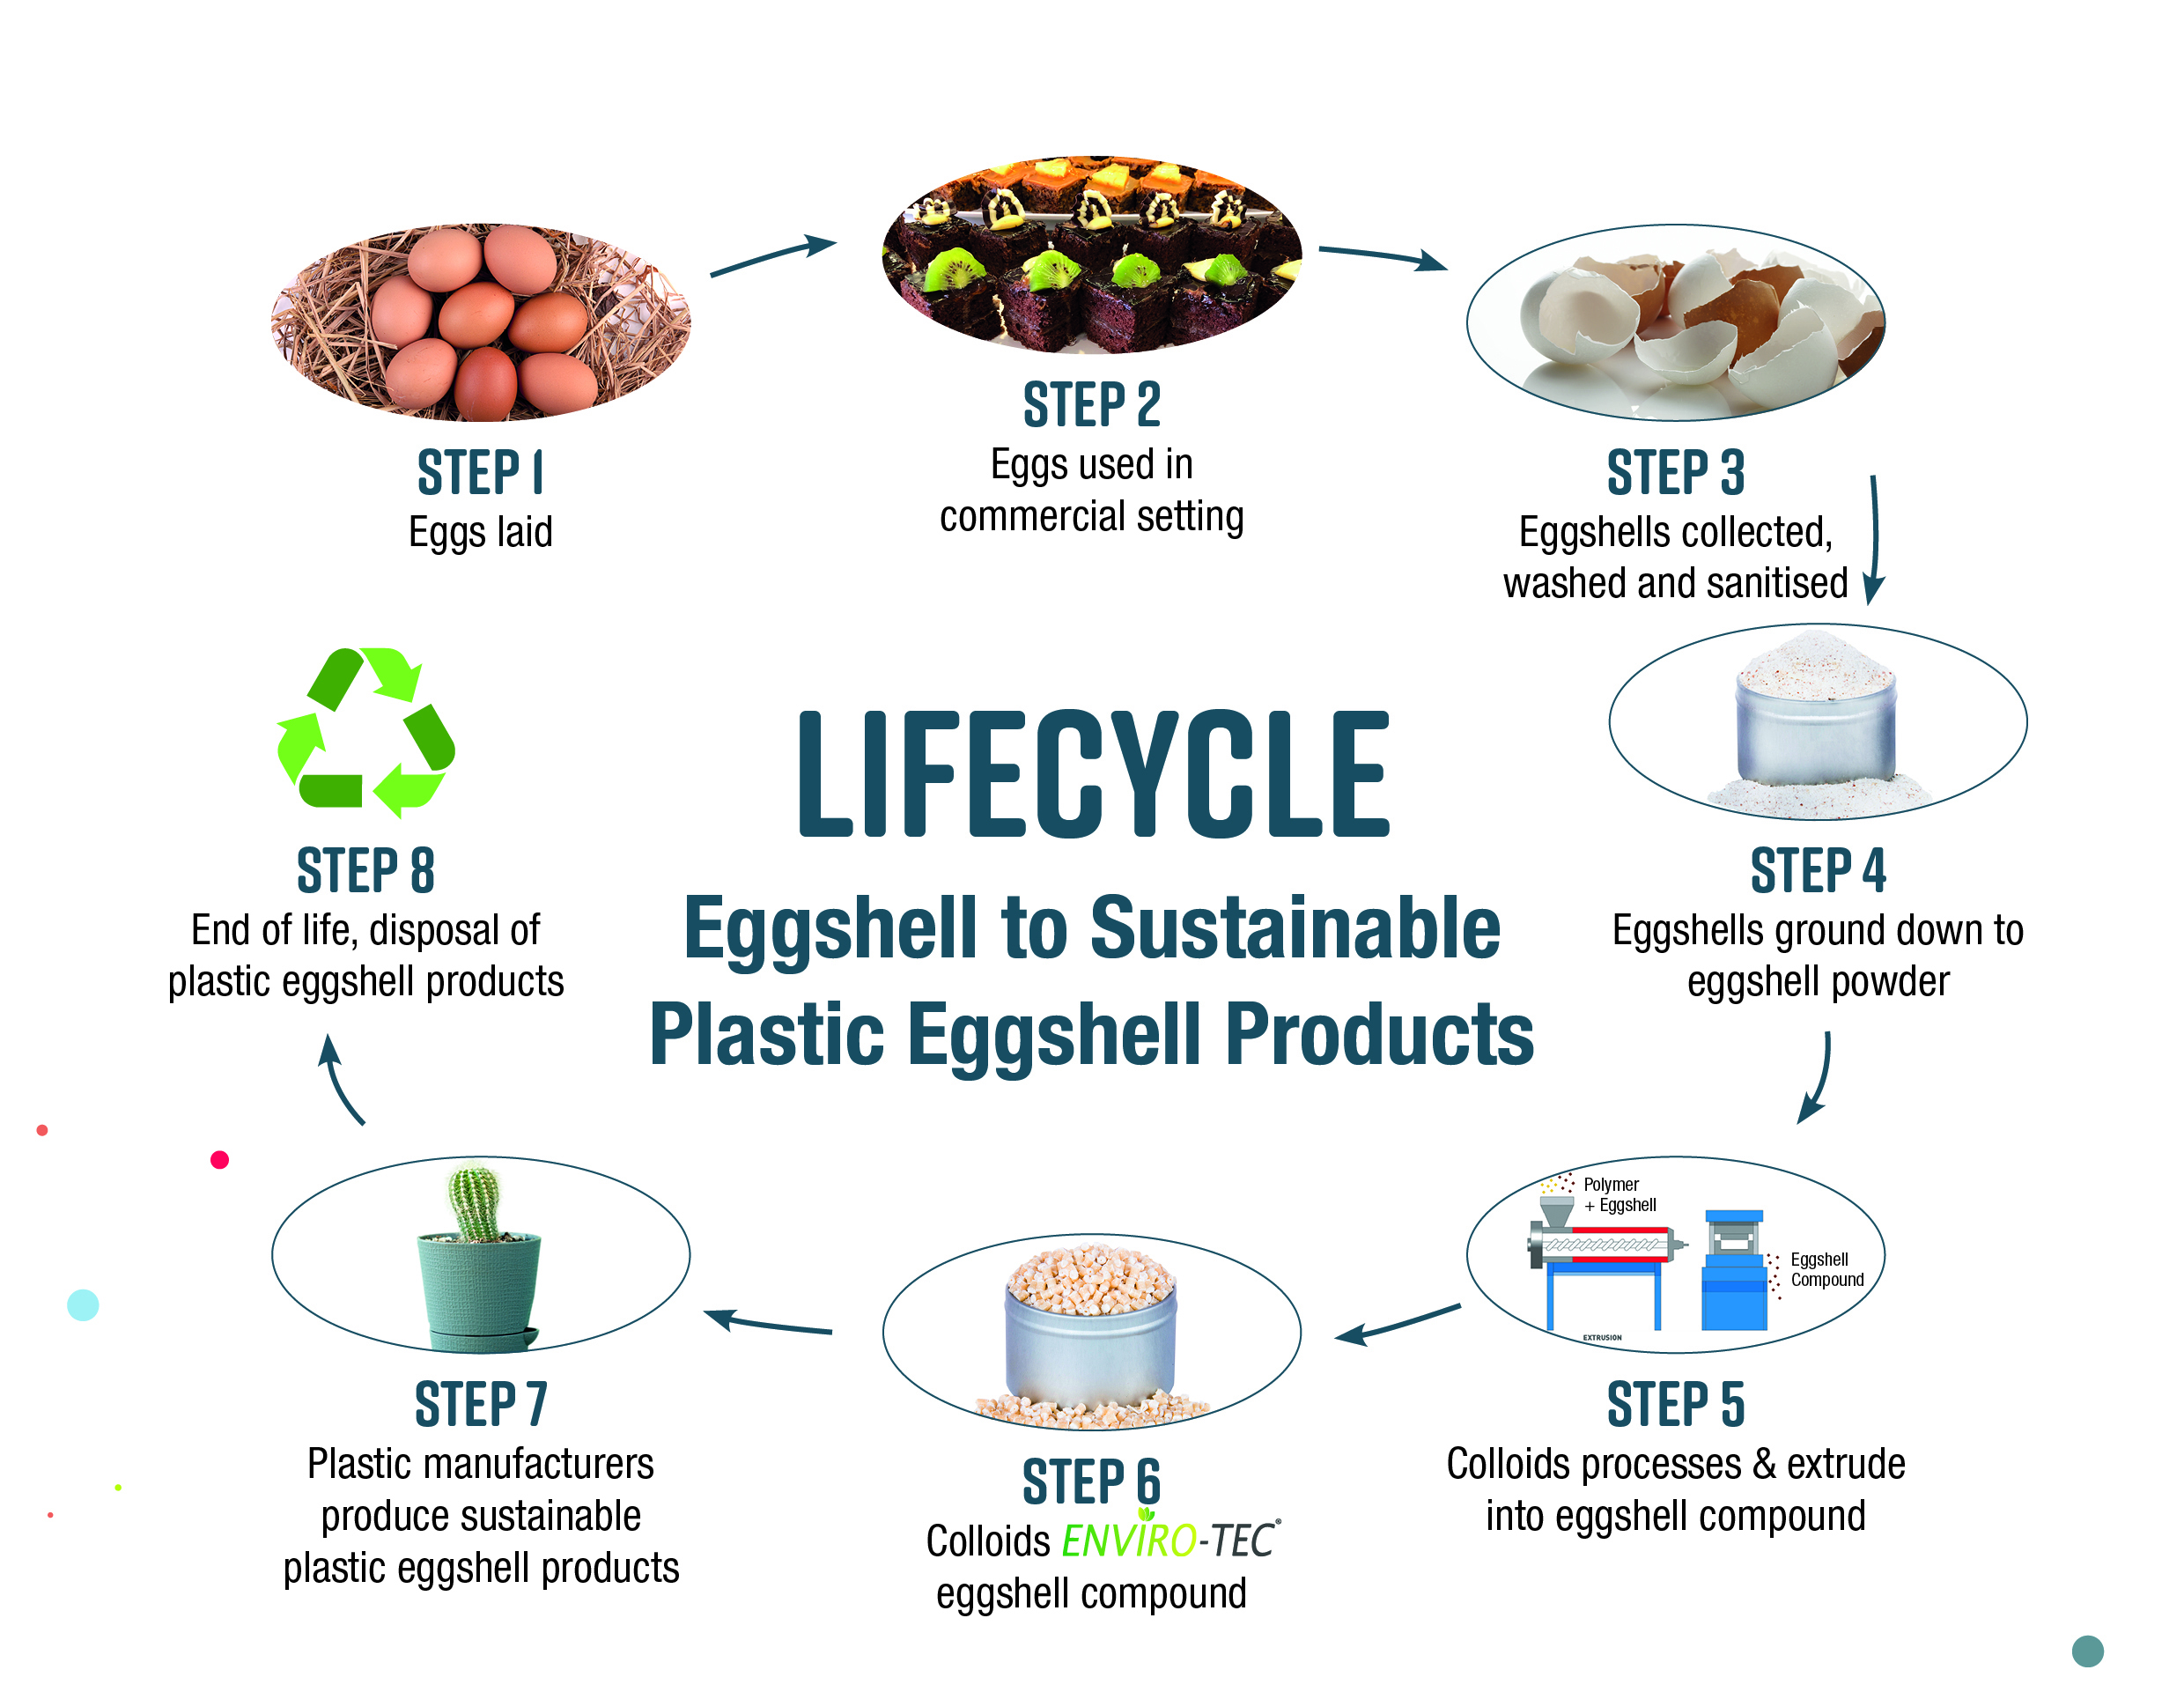 Lifecycle - Eggshell to Sustainable Plastic Eggshell Products